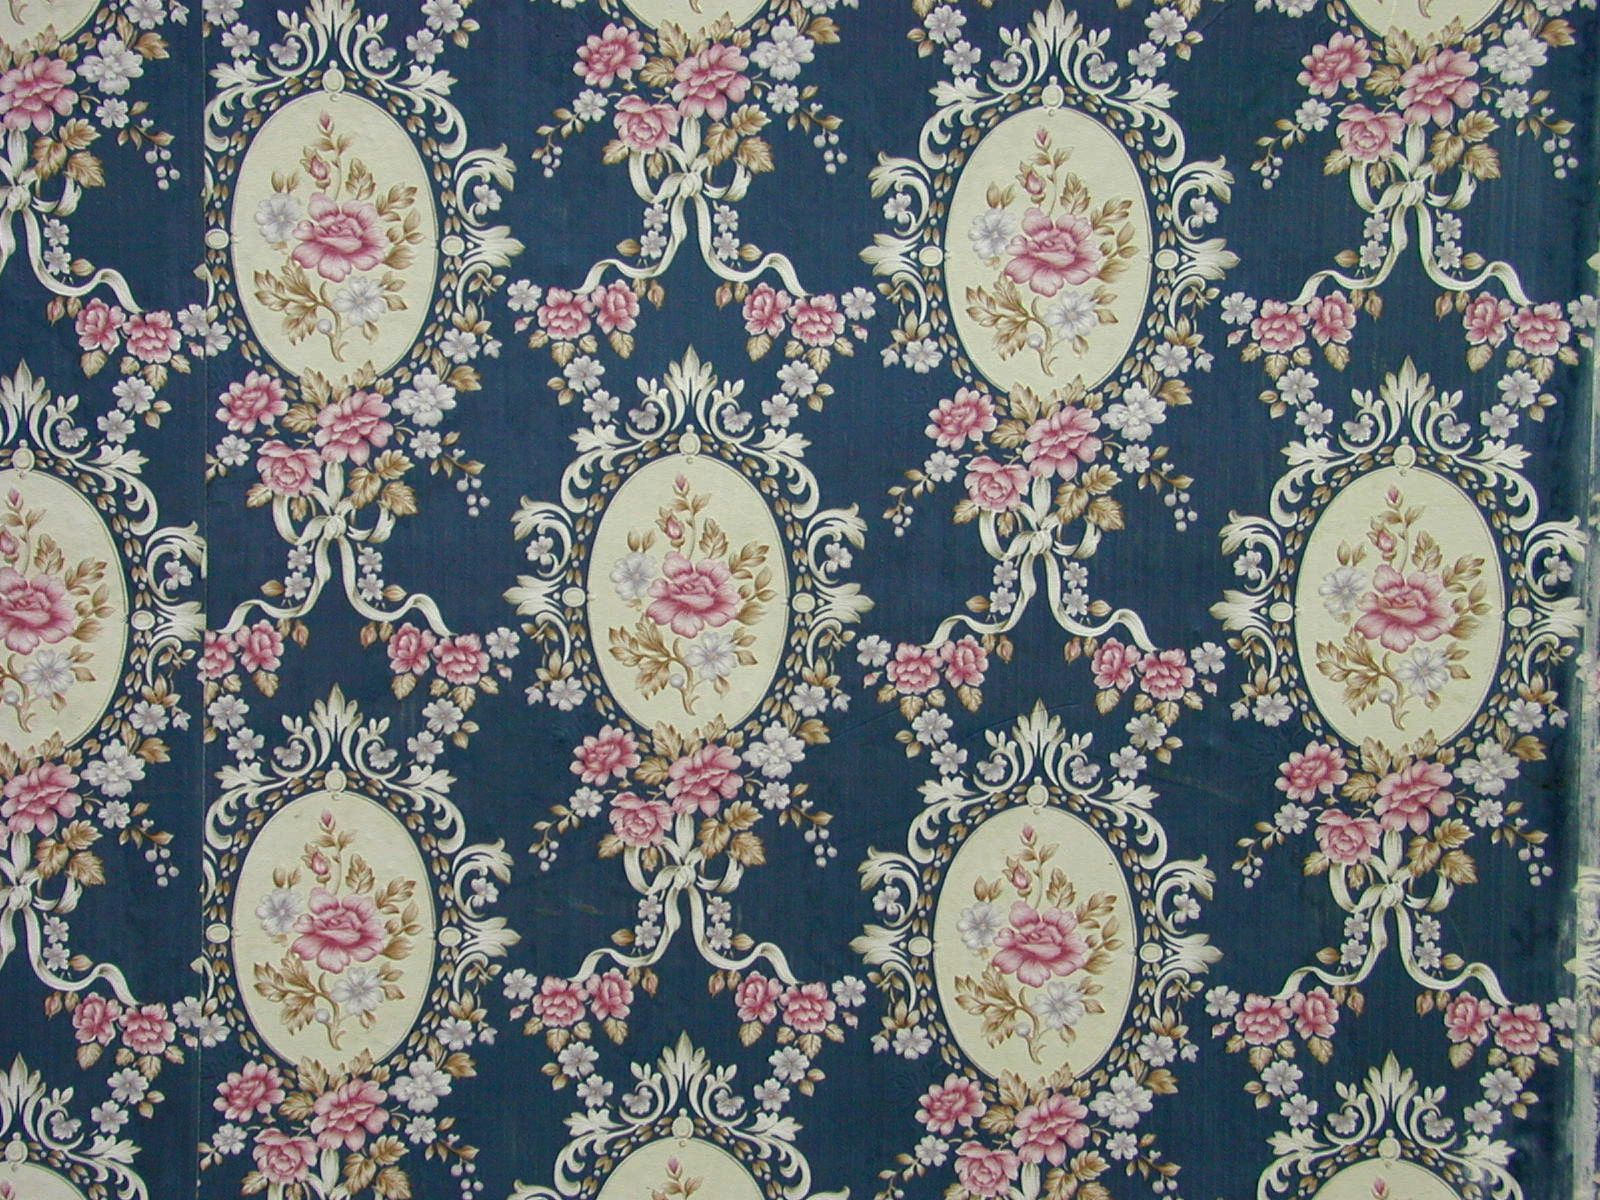 Exhibition: Victorian Wallpaper